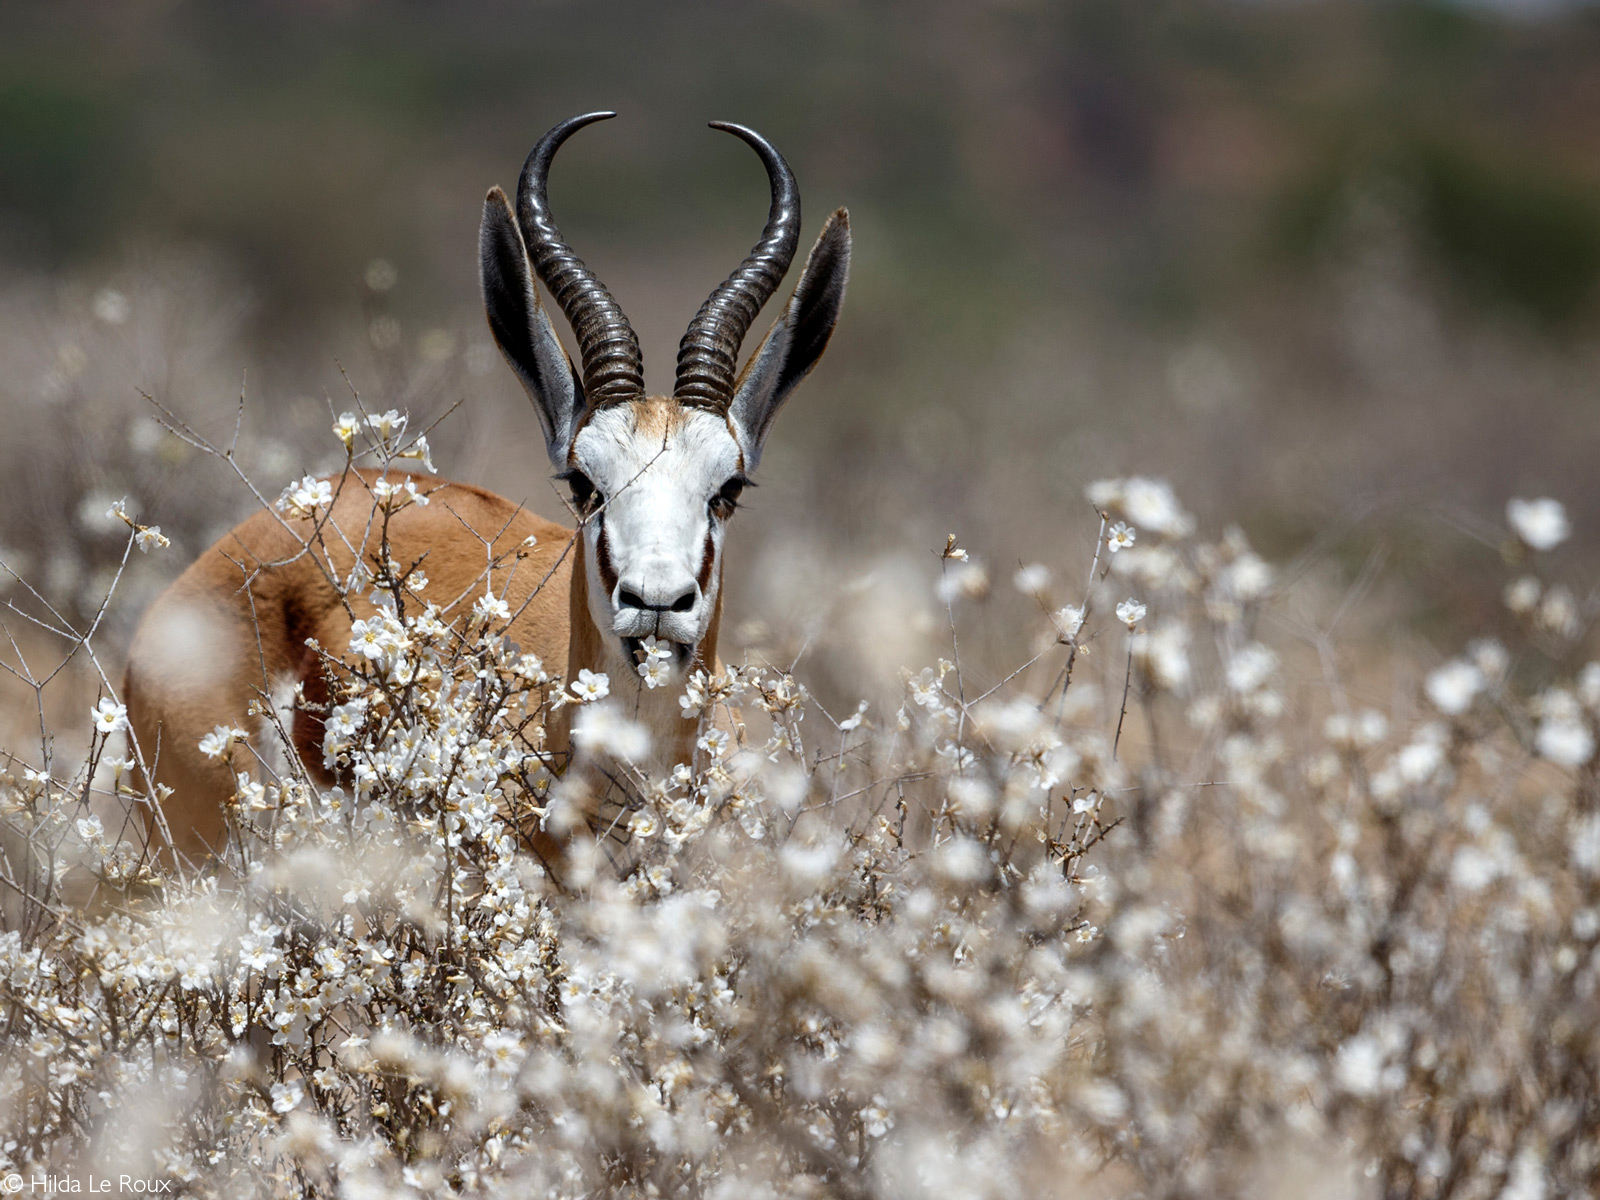 A springbok enjoying the flowers after the first shower of rain. Kgalagadi Transfrontier Park, South Africa © Hilda Le Roux